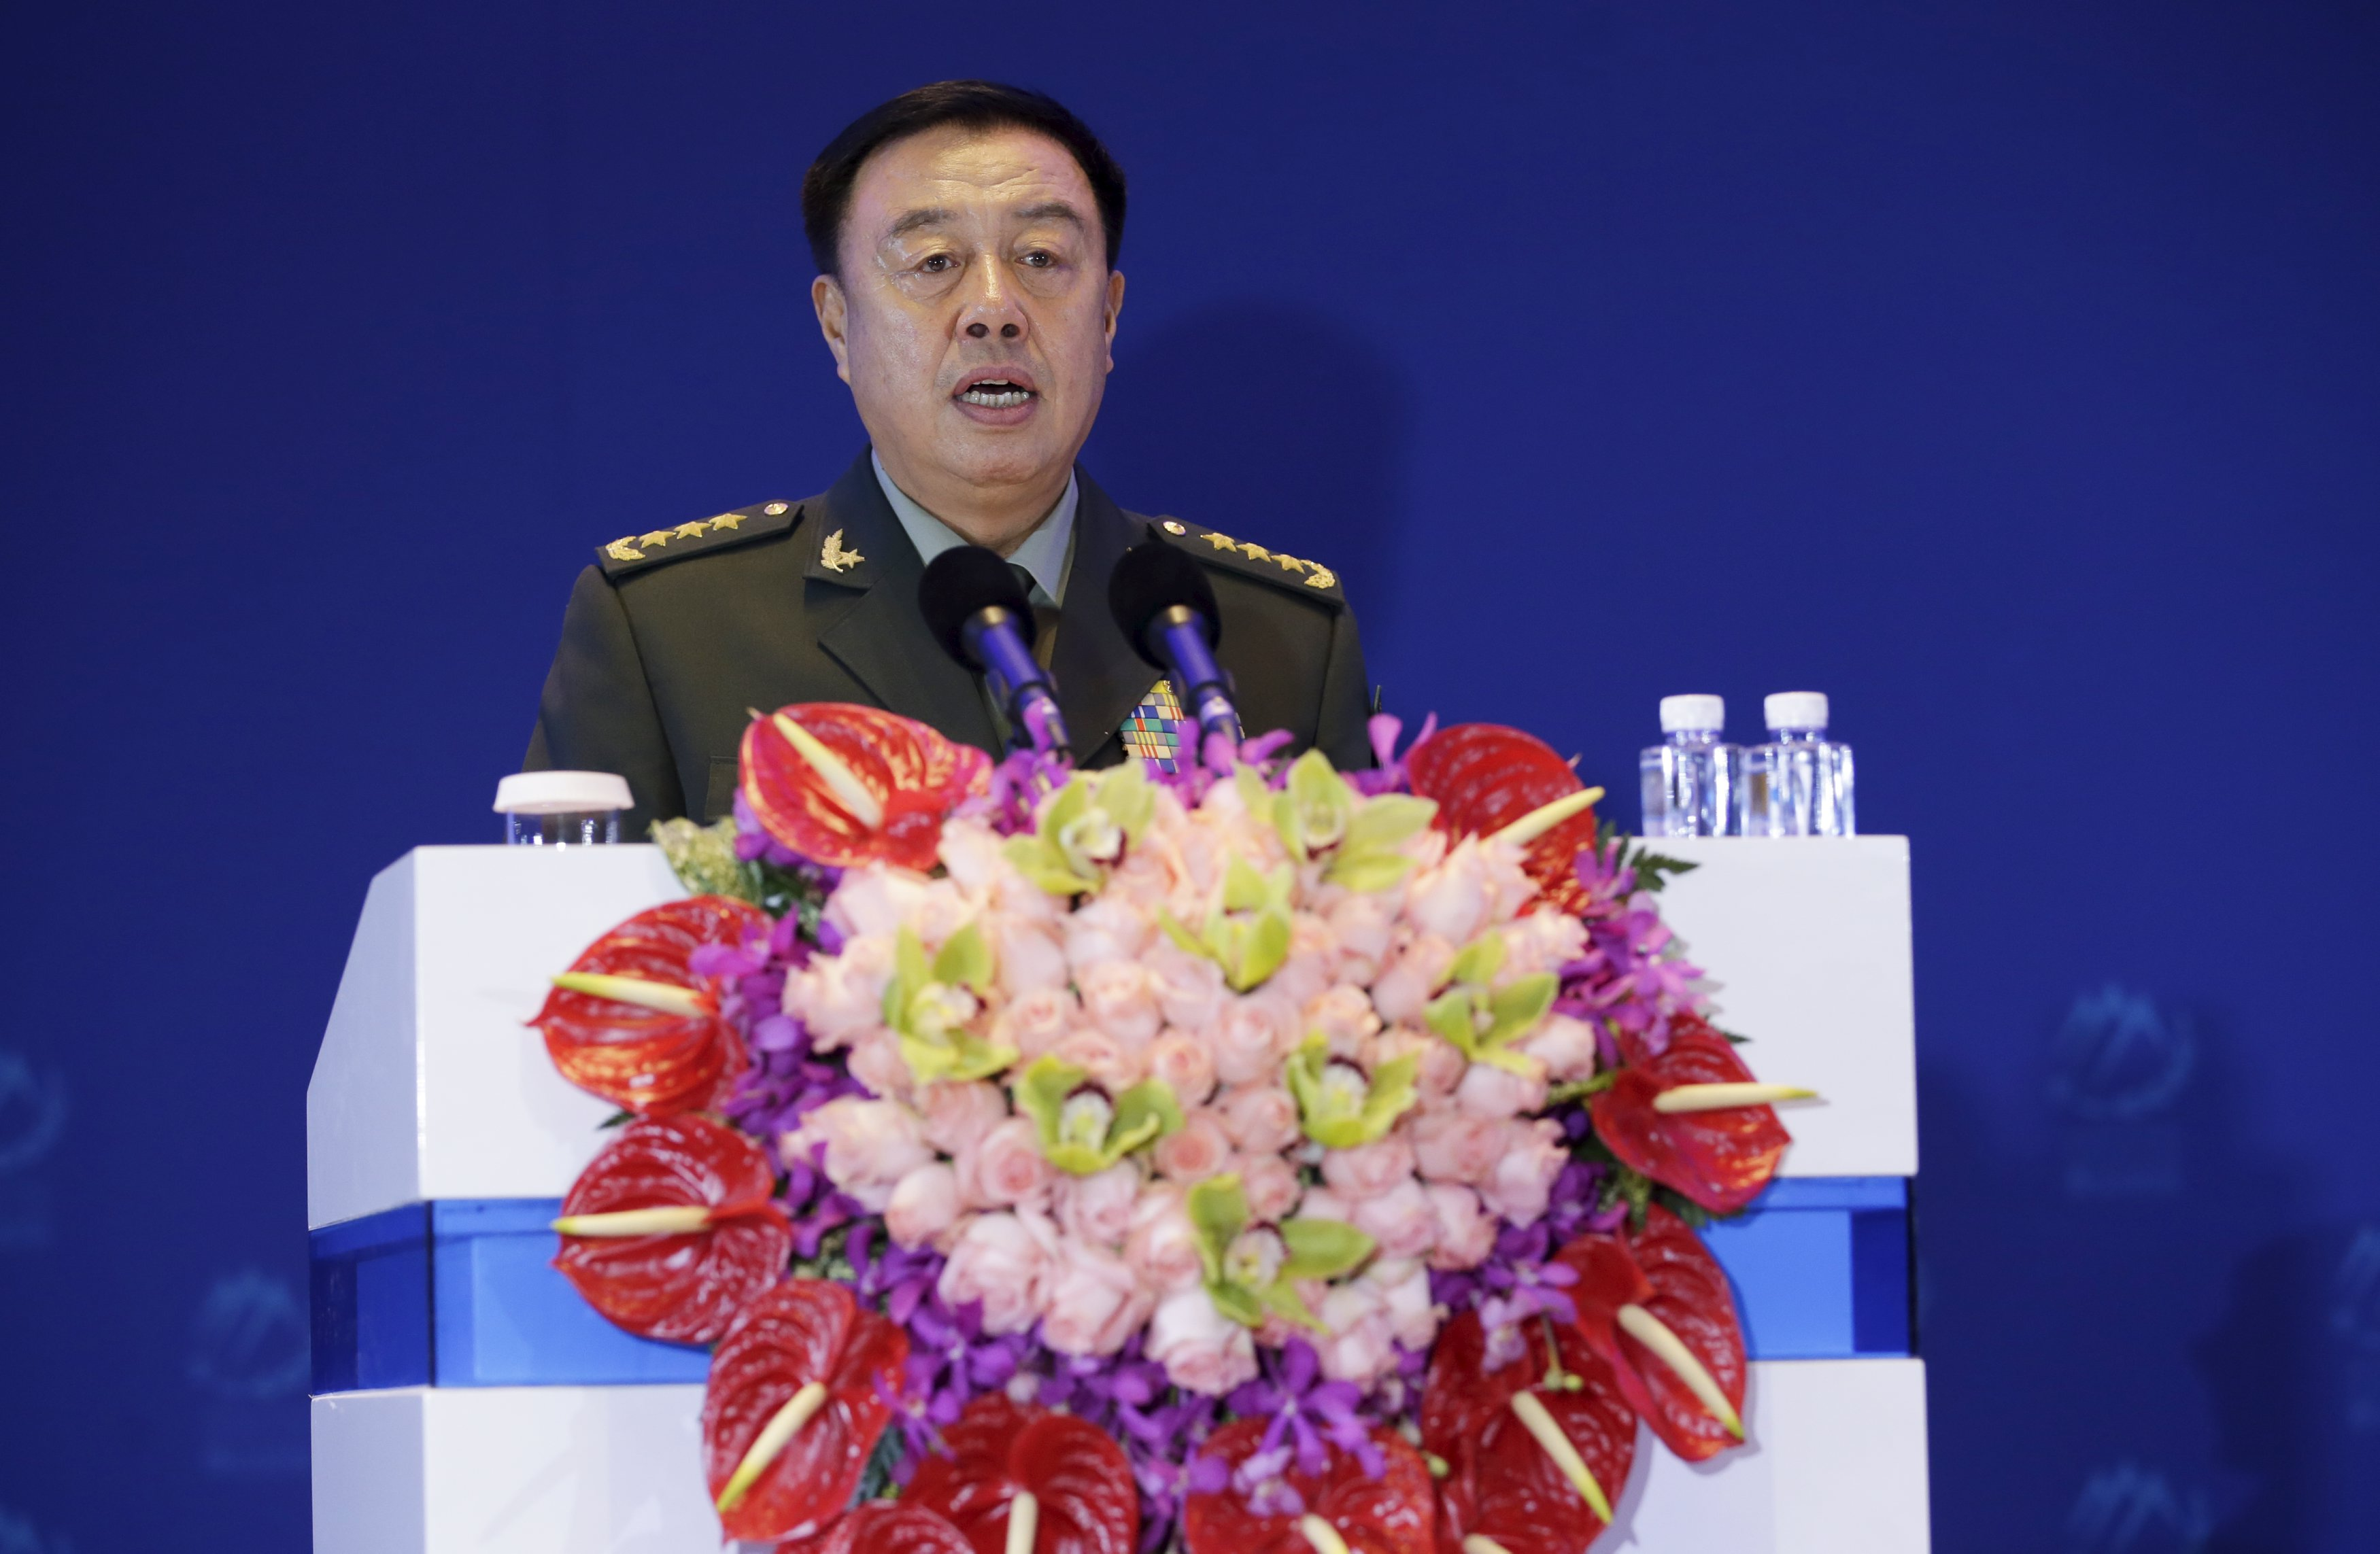 China's Central Military Commission Vice Chairman Fan Changlong delivers a speech at the sixth Xiangshan Forum in Beijing, China, October 17, 2015. Photo: Reuters